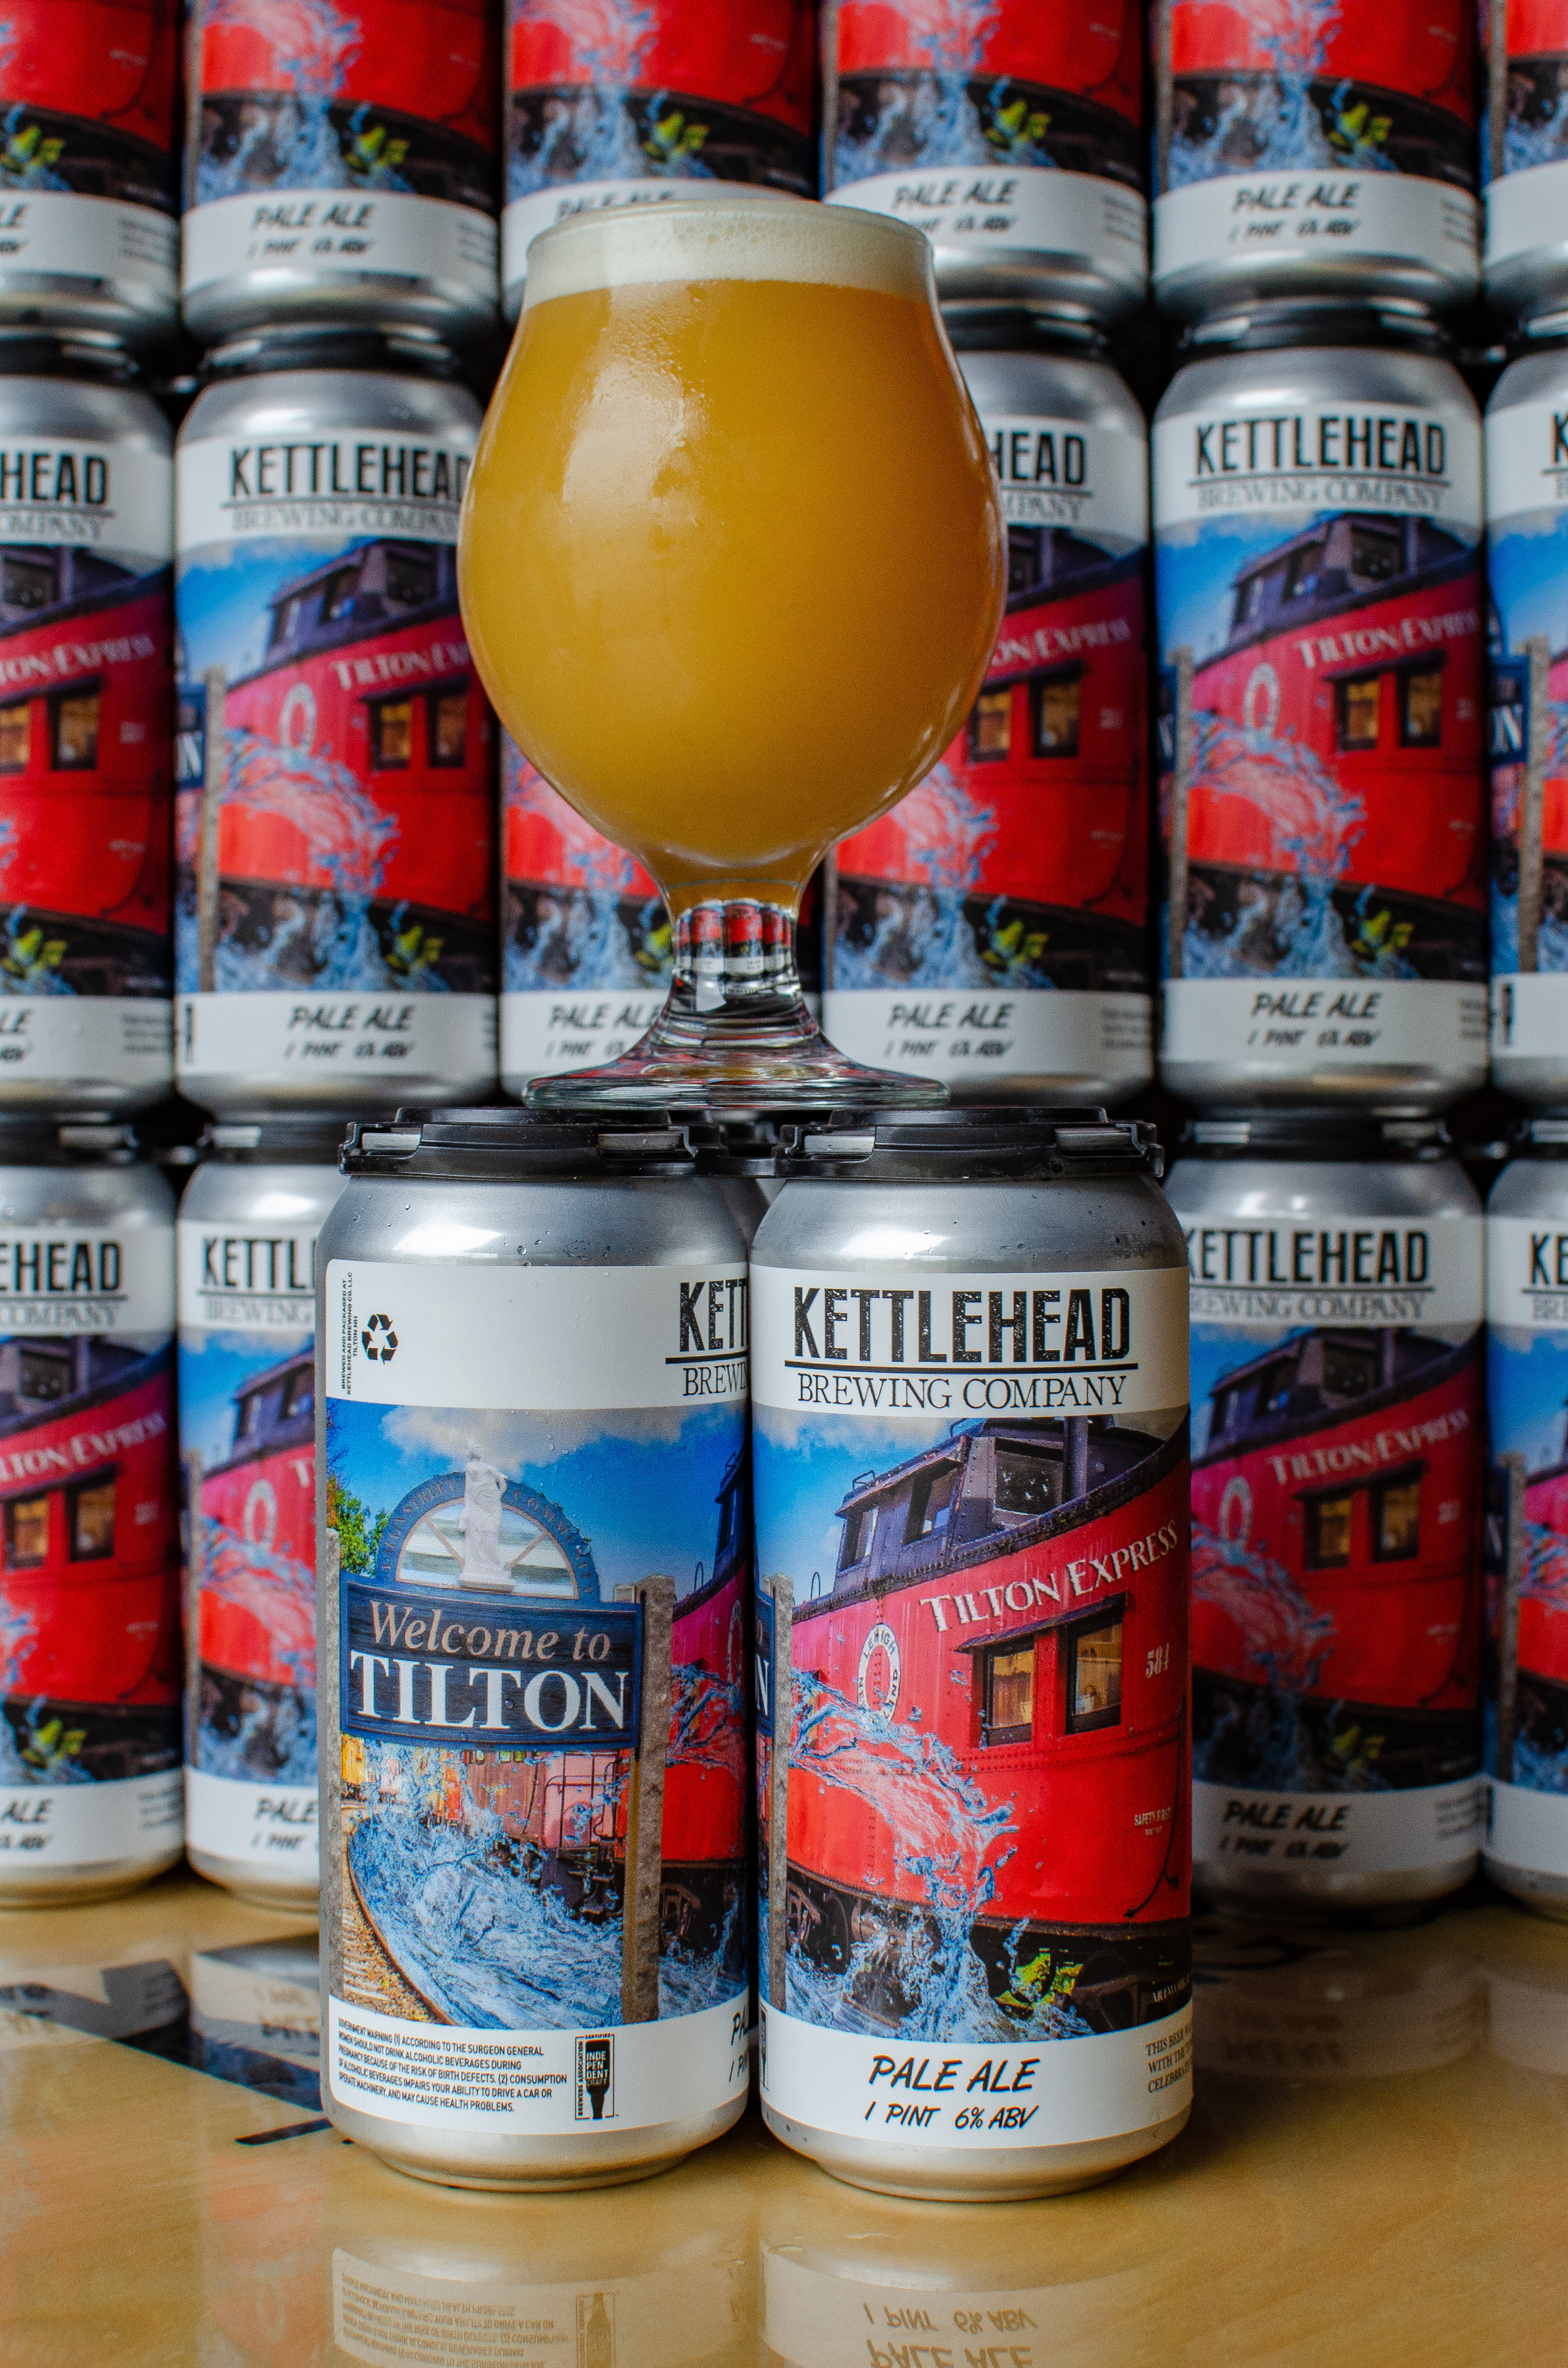 Tilton Express, Pale Ale, 6% - A beer brewed for Tilton Celebrates 150. Congrats to local artist Shawn Palmer for winning the Can Label Art Contest.